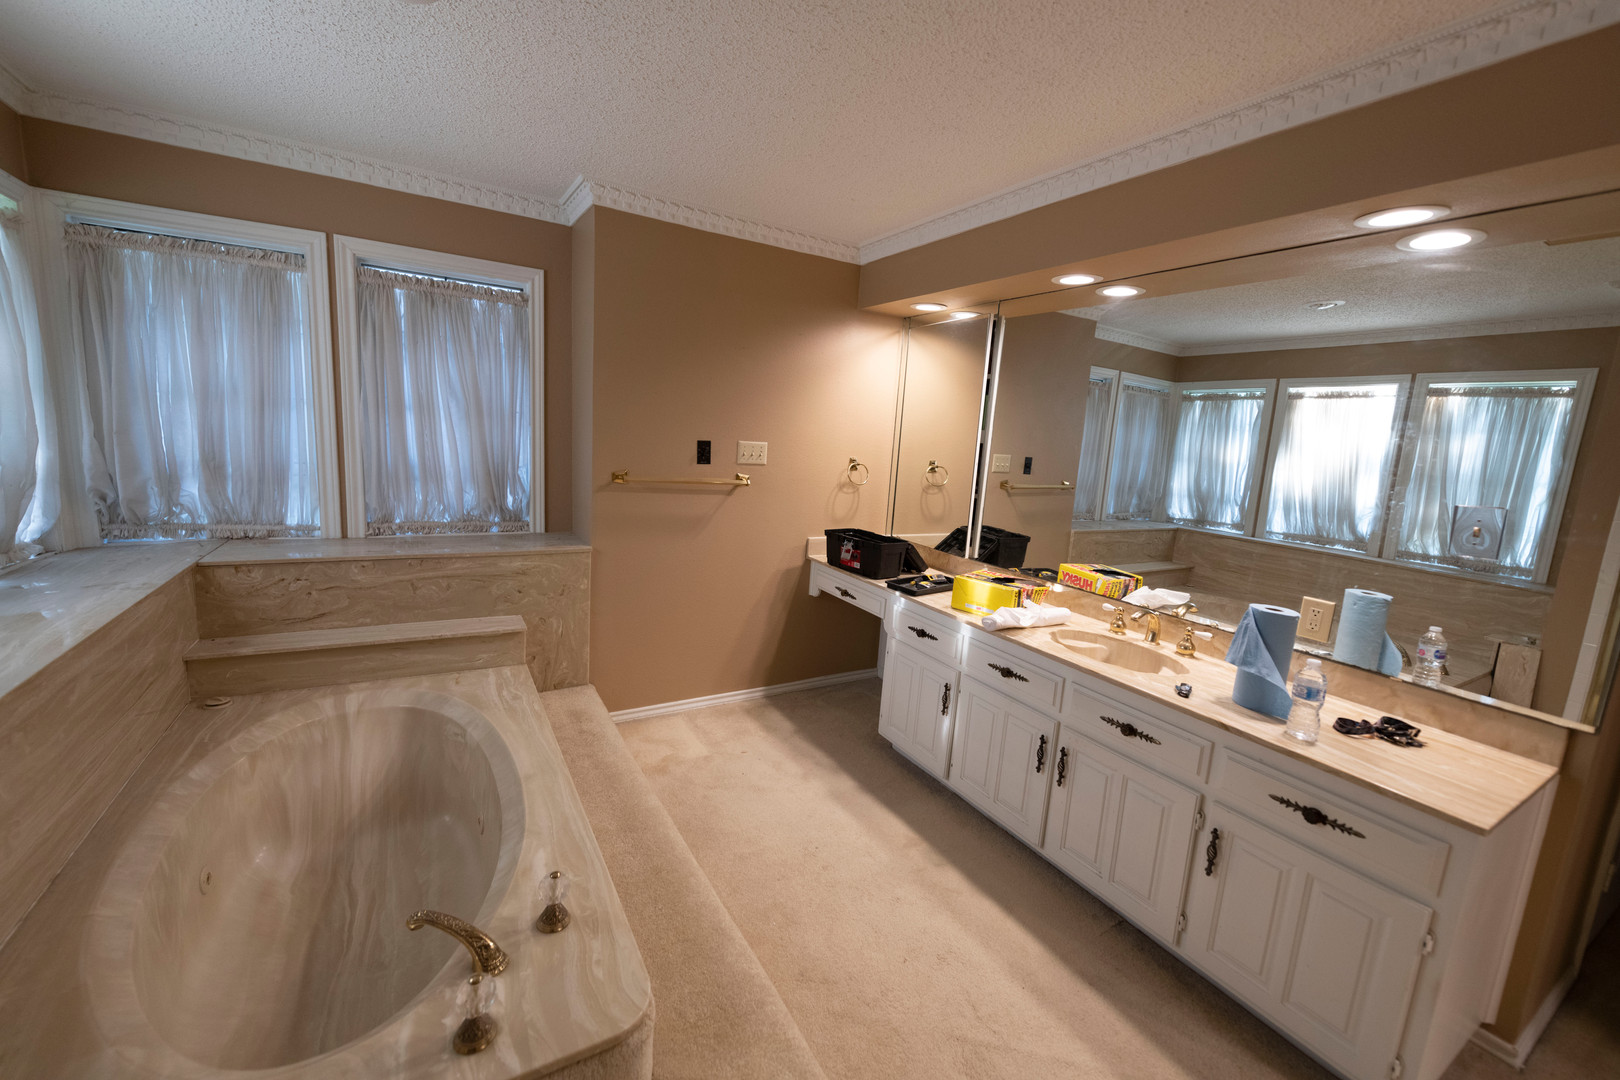 1960's Bathroom and Cabinet Design